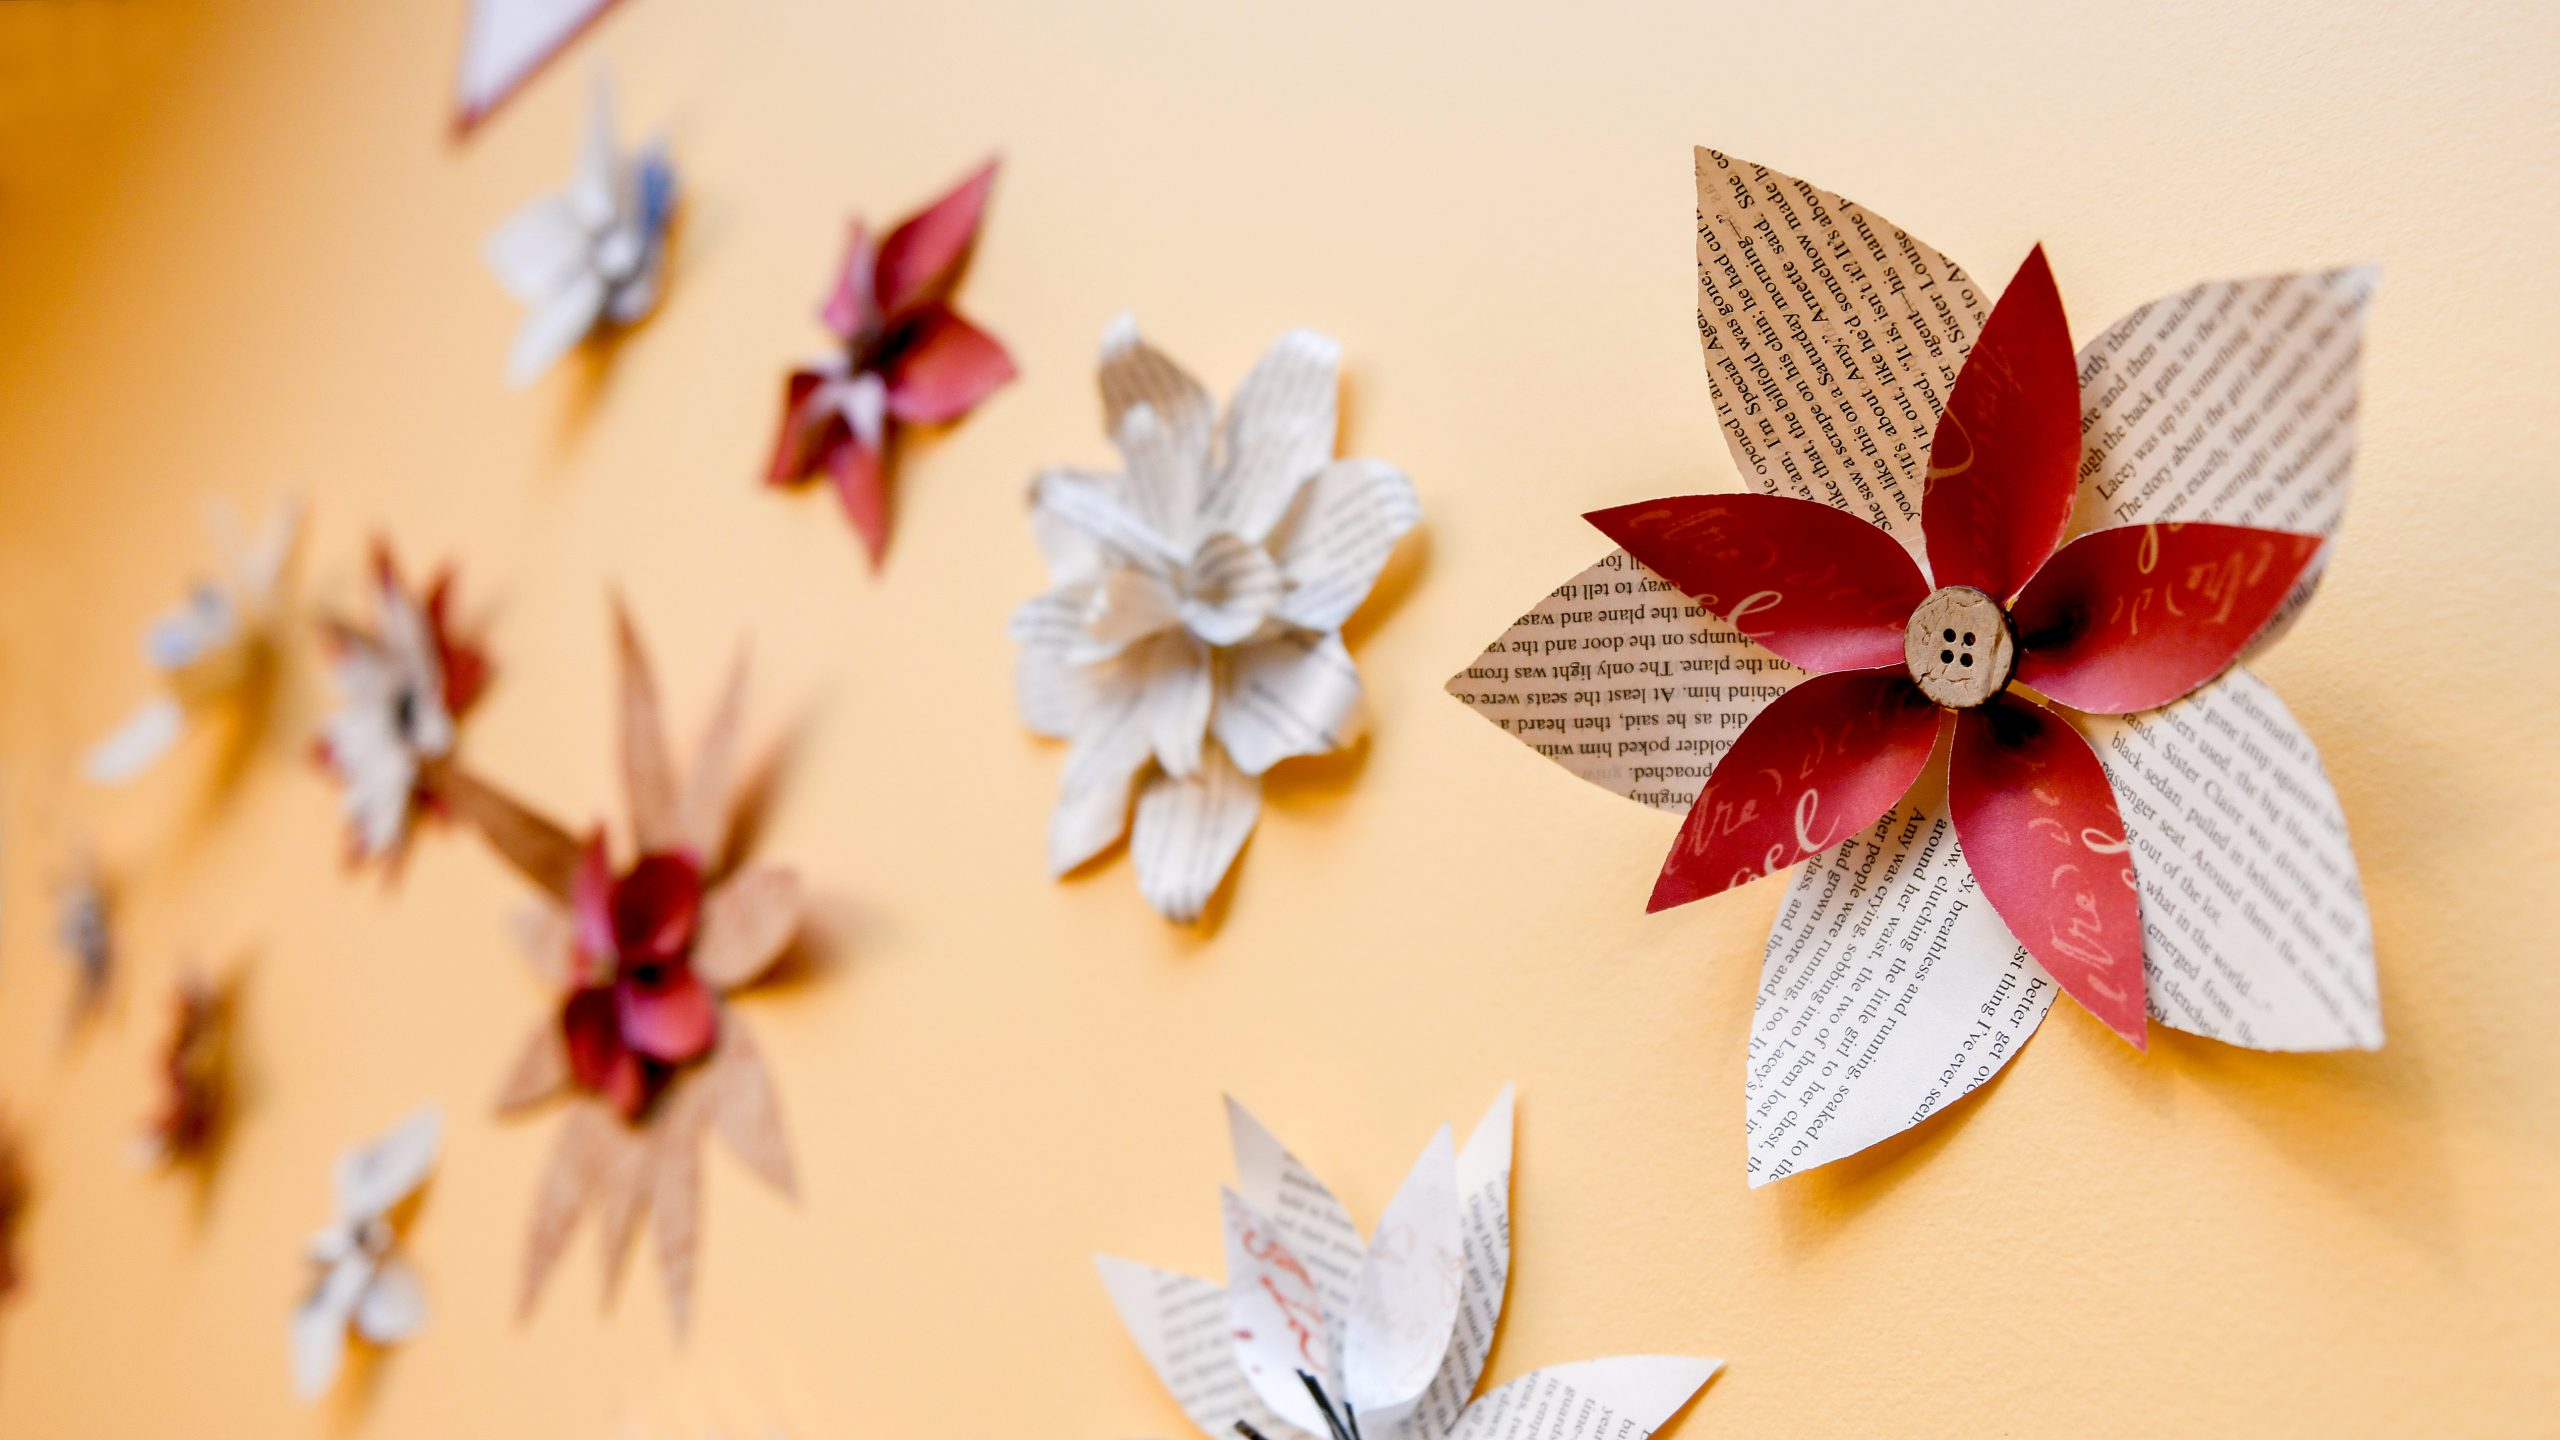 Paper flowers on a wall in the Women's Center.